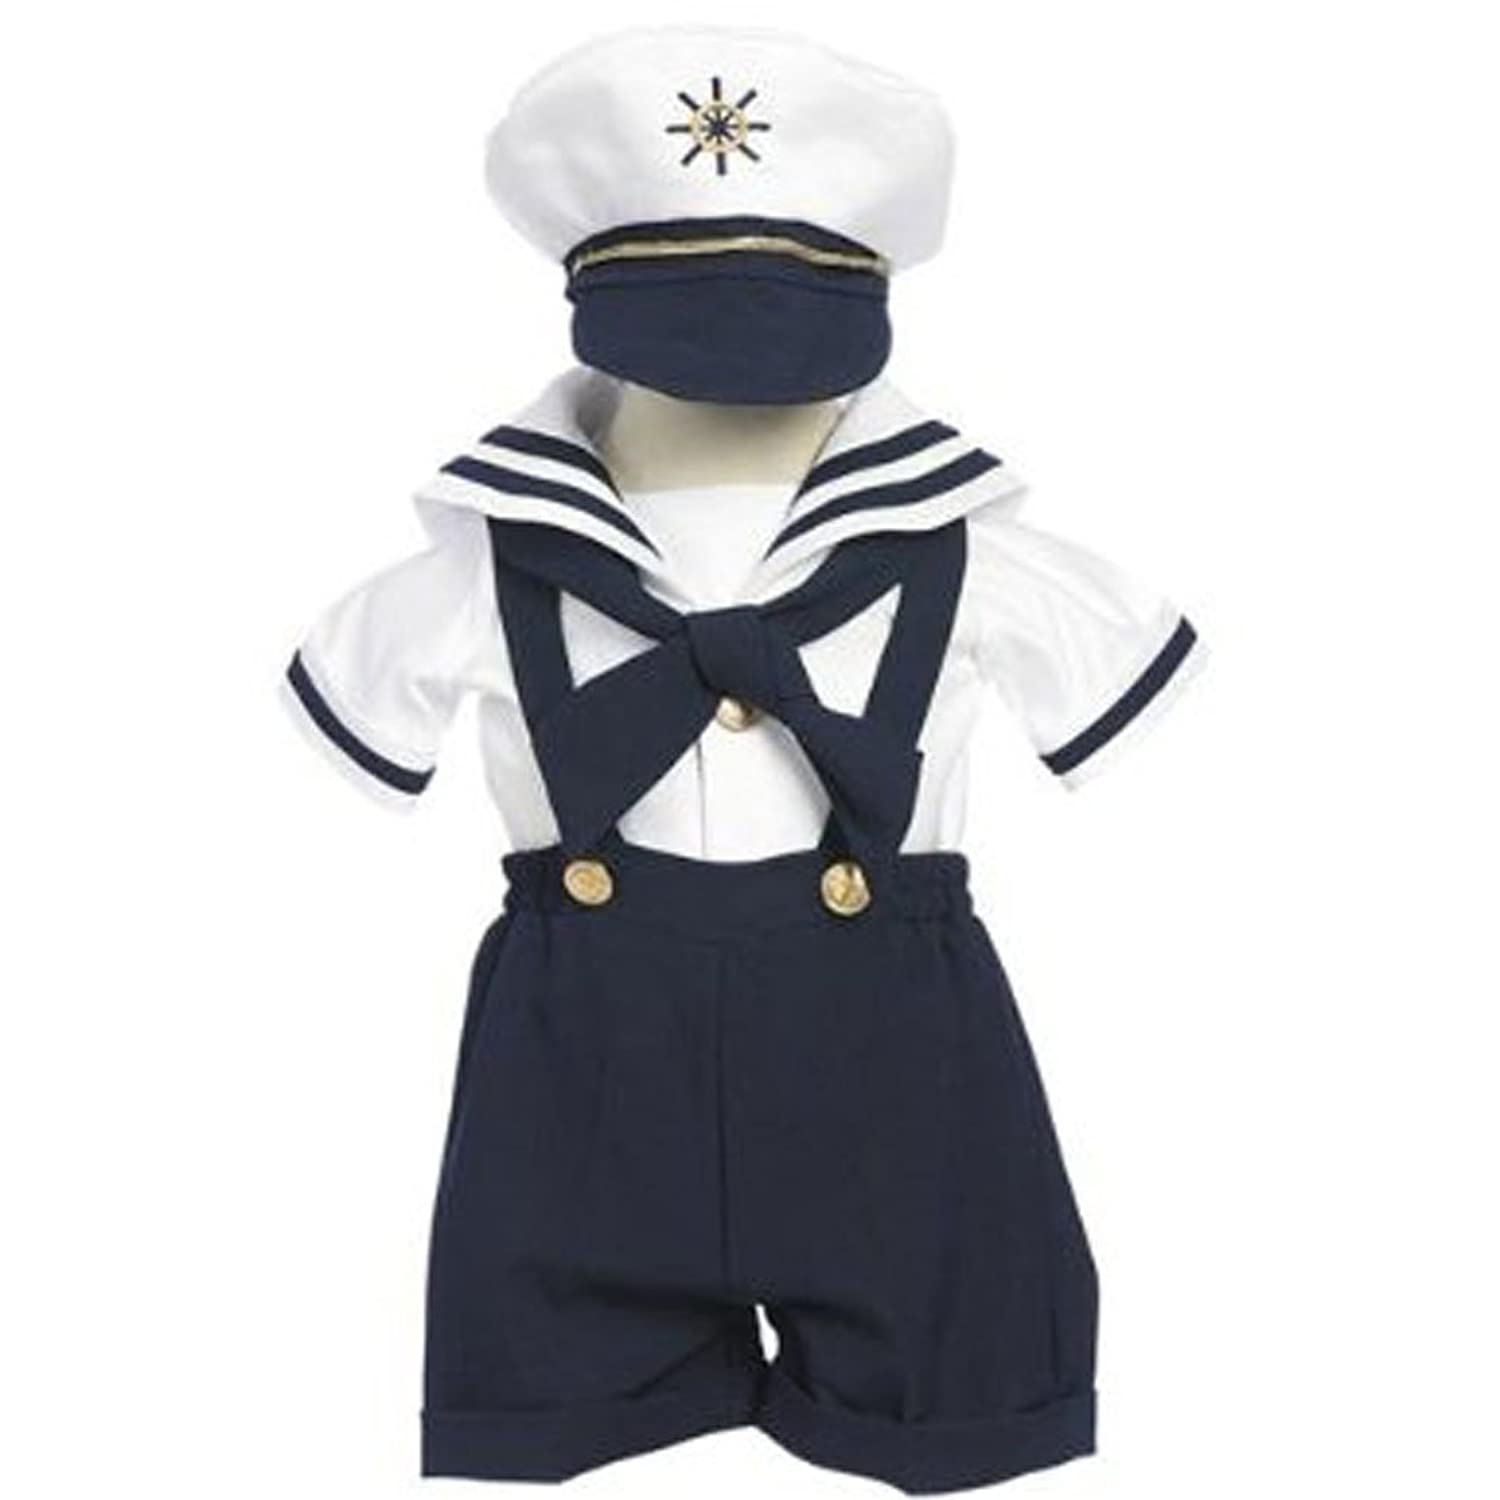 Toddler Boys Designer Sailor Themed Clothes Classykidzshop Navy Sailor Boy